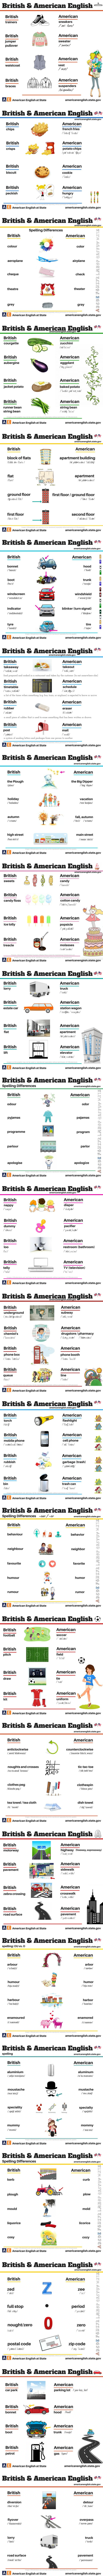 British English Vs American English Over 100 Differences Illustrated